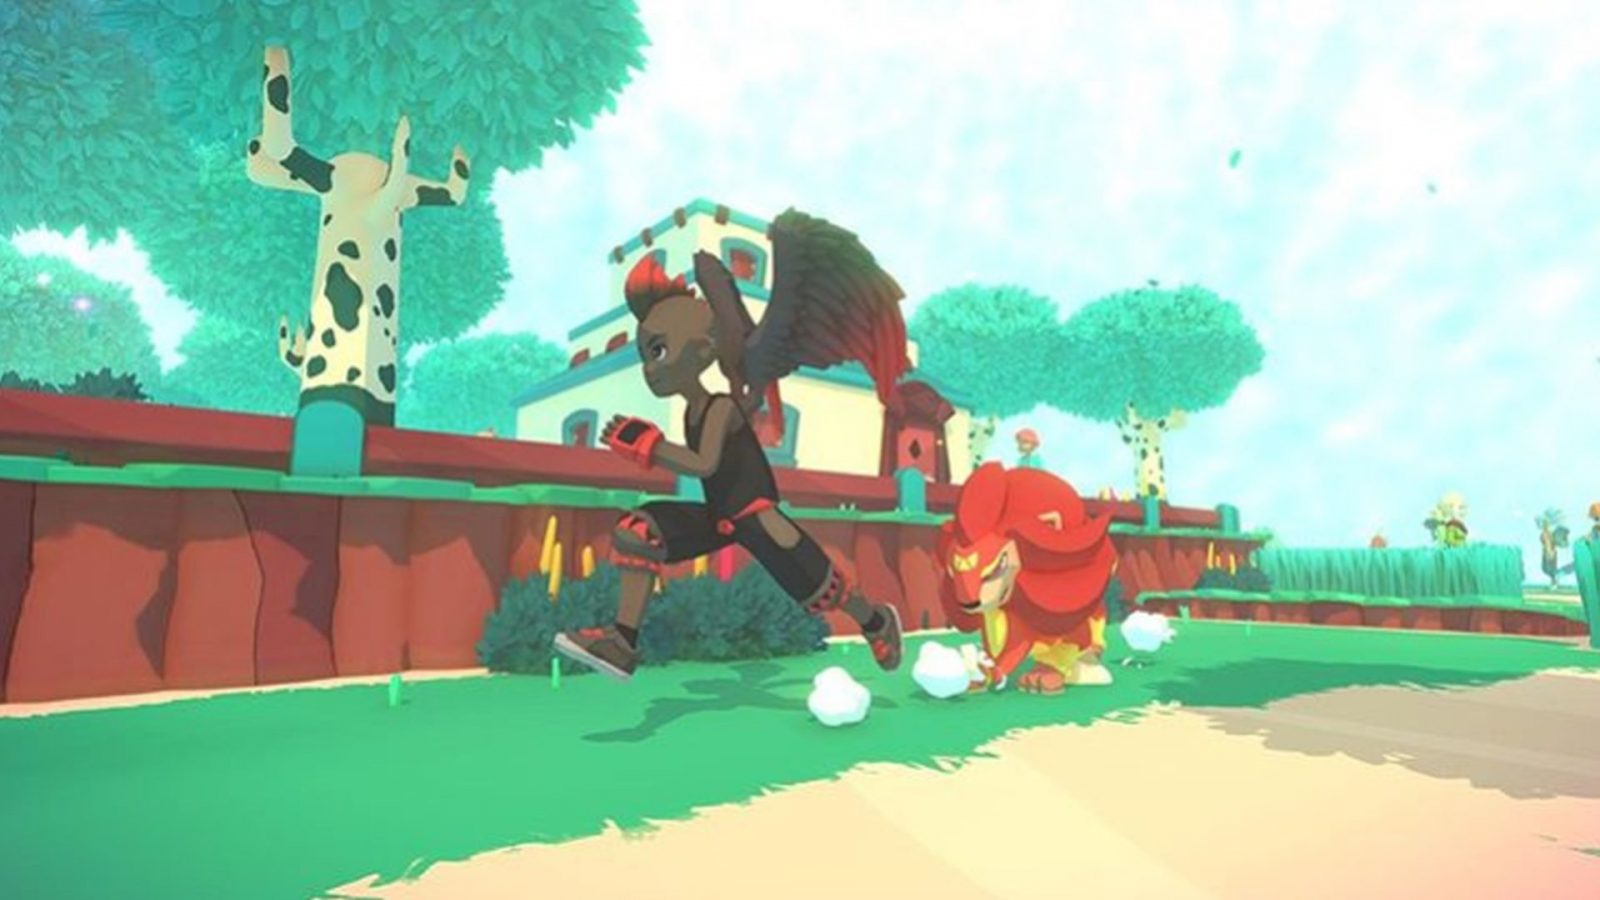 The Temtem stress take a look at offers you a free style of the Pokémon-like